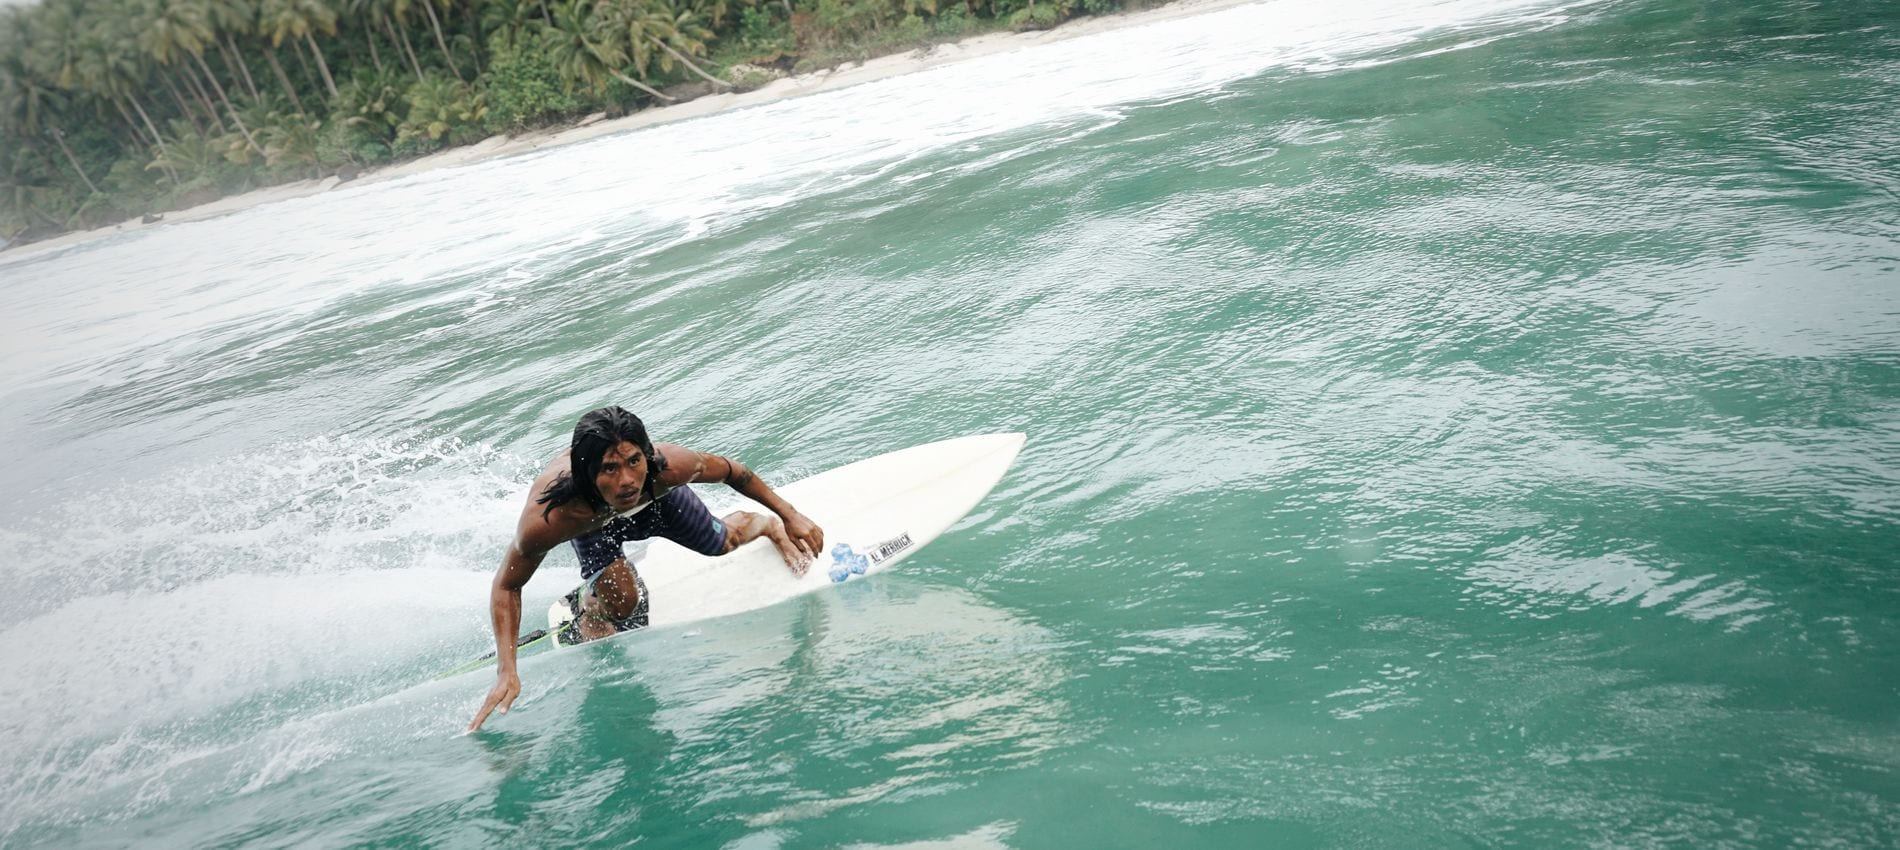 Surfer leaning into a wave in Mentawai islands